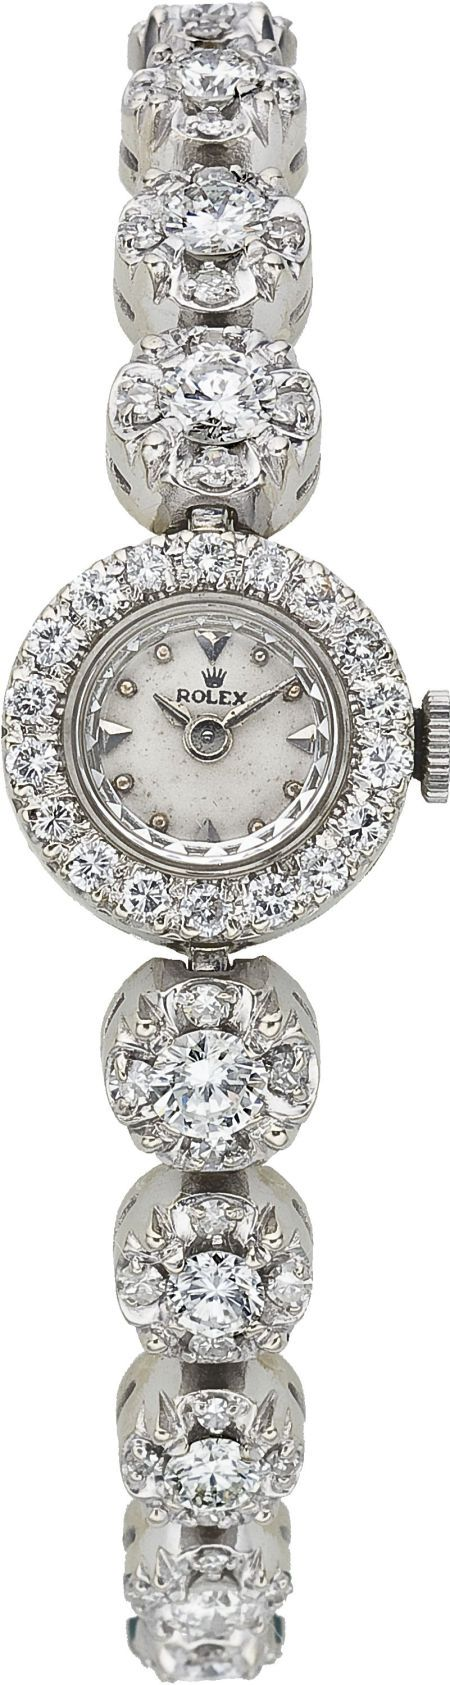 ♥••*´¨`*•.☆• вeaυтιғυl♥••*´¨`*•.☆• Rolex Lady's Diamond, White Gold Integral Bracelet Wristwatch, circa 1950.